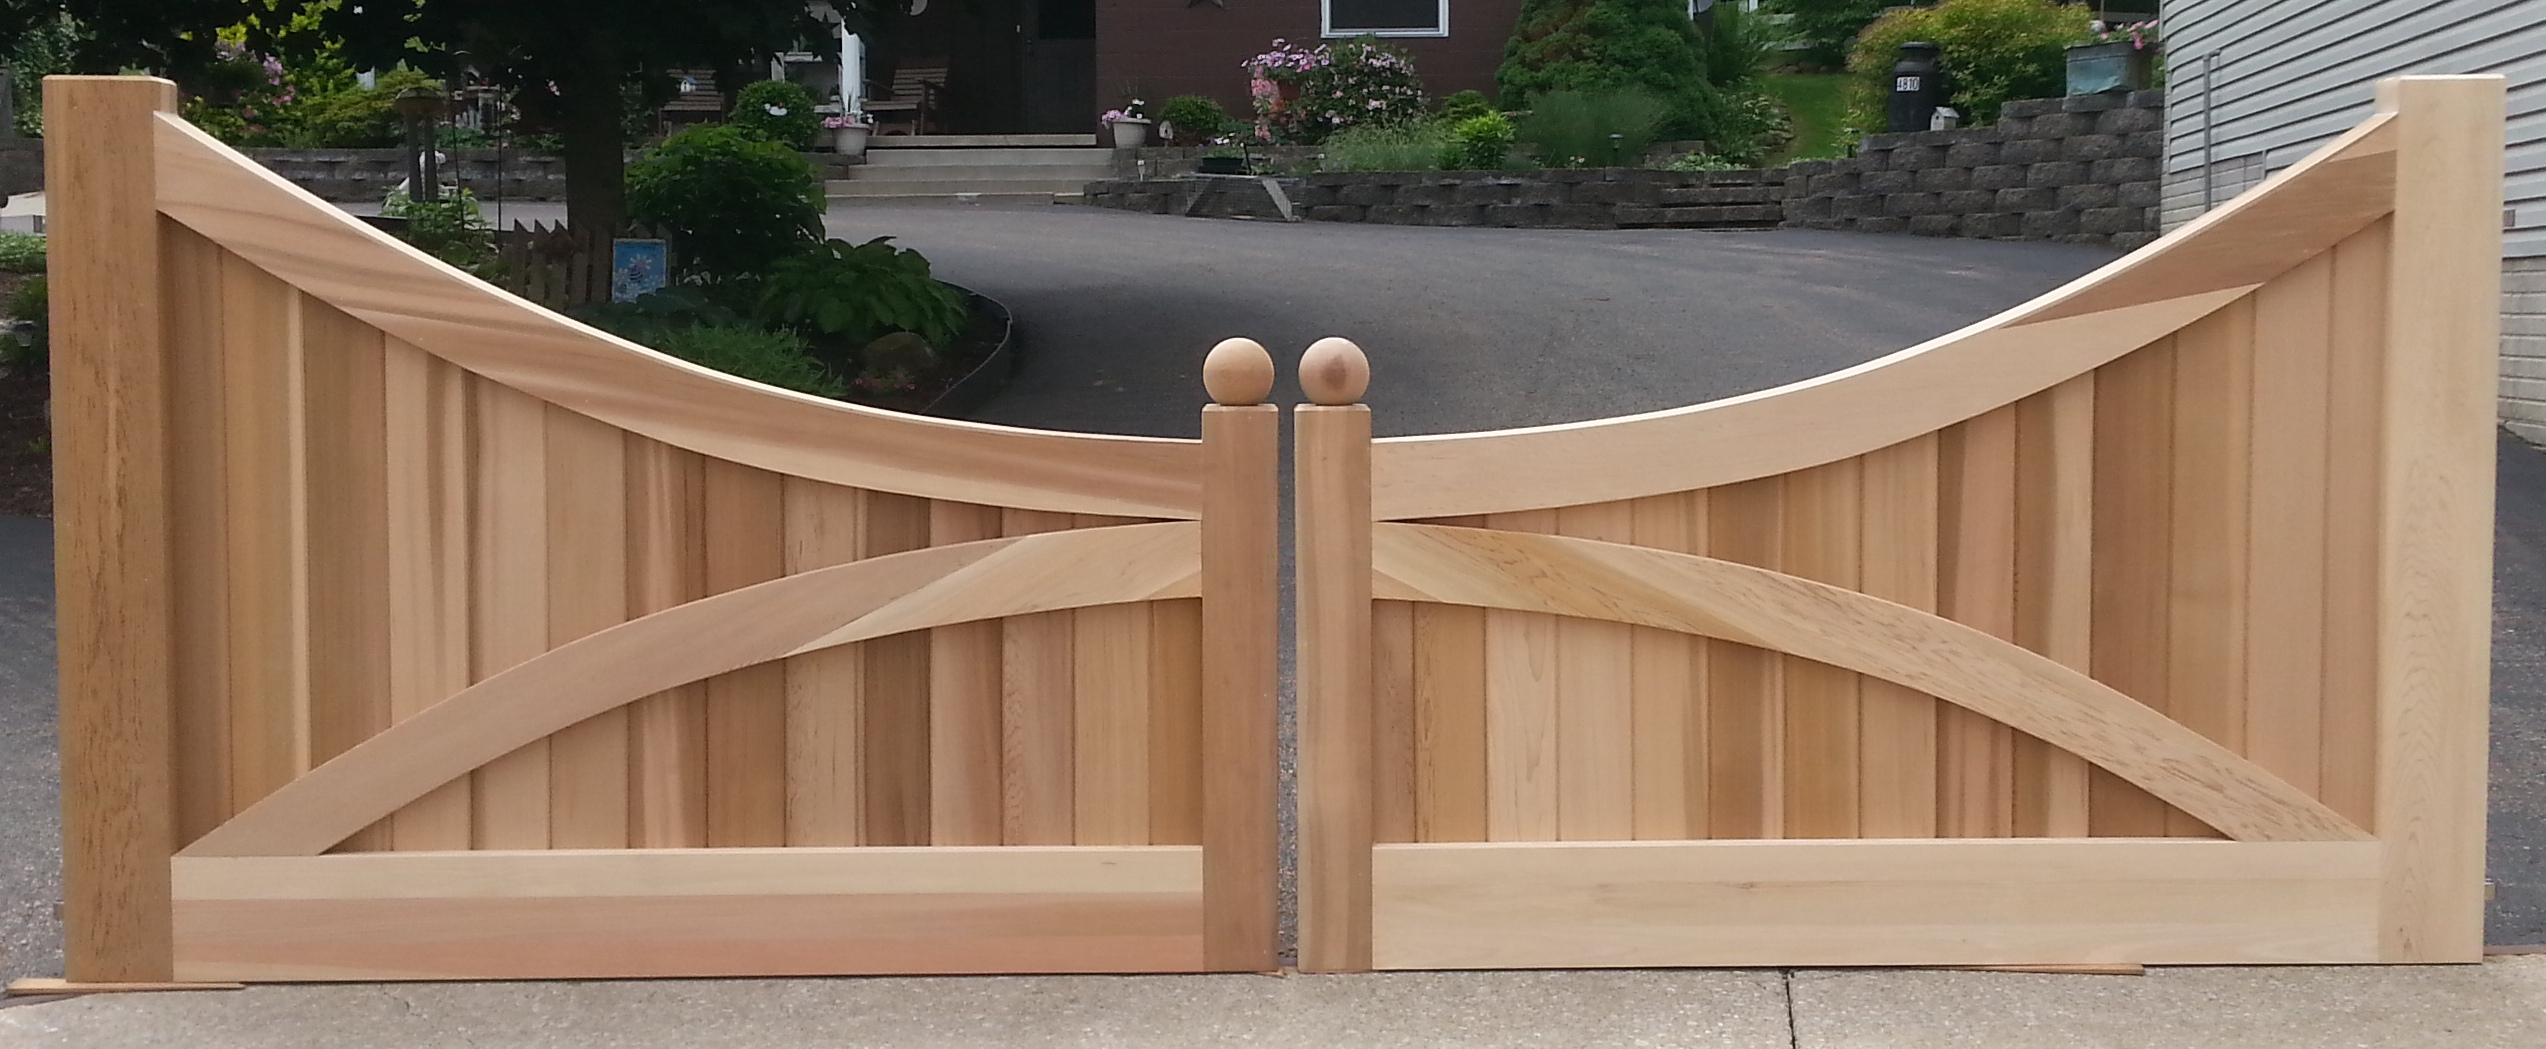 Custom Driveway Gates Made Out Of Western Red Cedar New